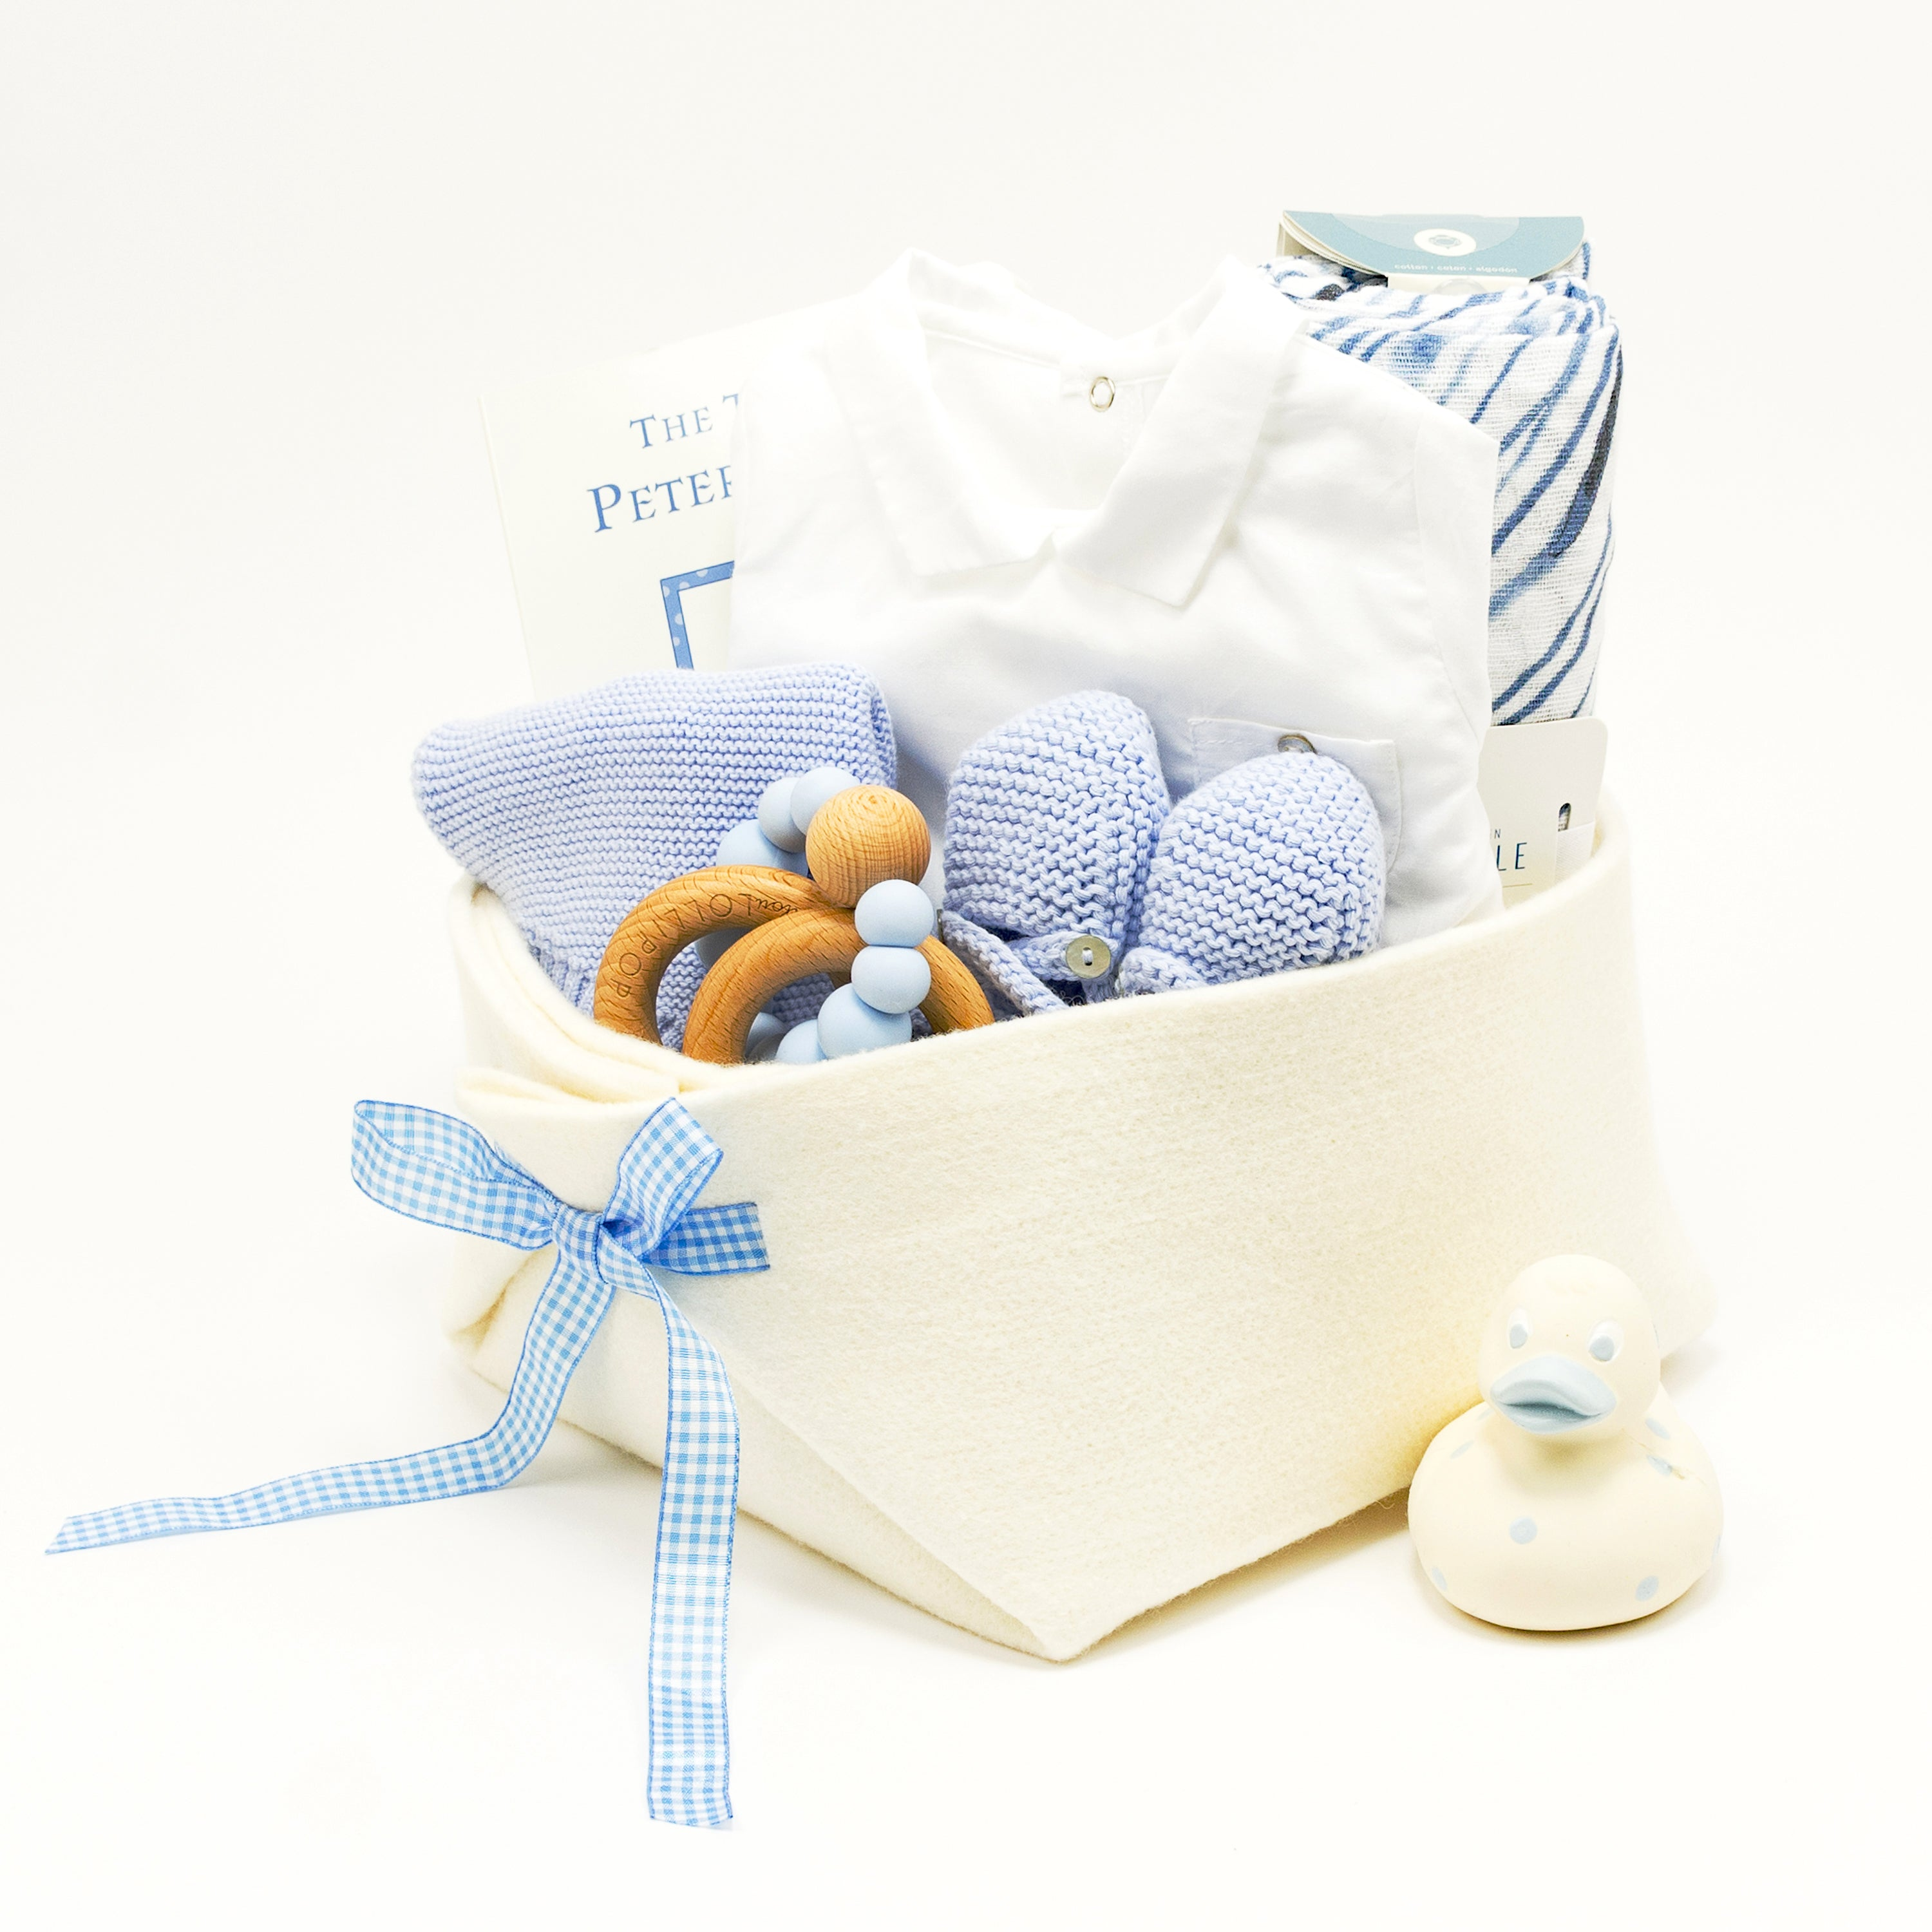 Luxury Baby Boy Gift Basket at Bonjour Baby Baskets, perfect Corporate Baby Gifts